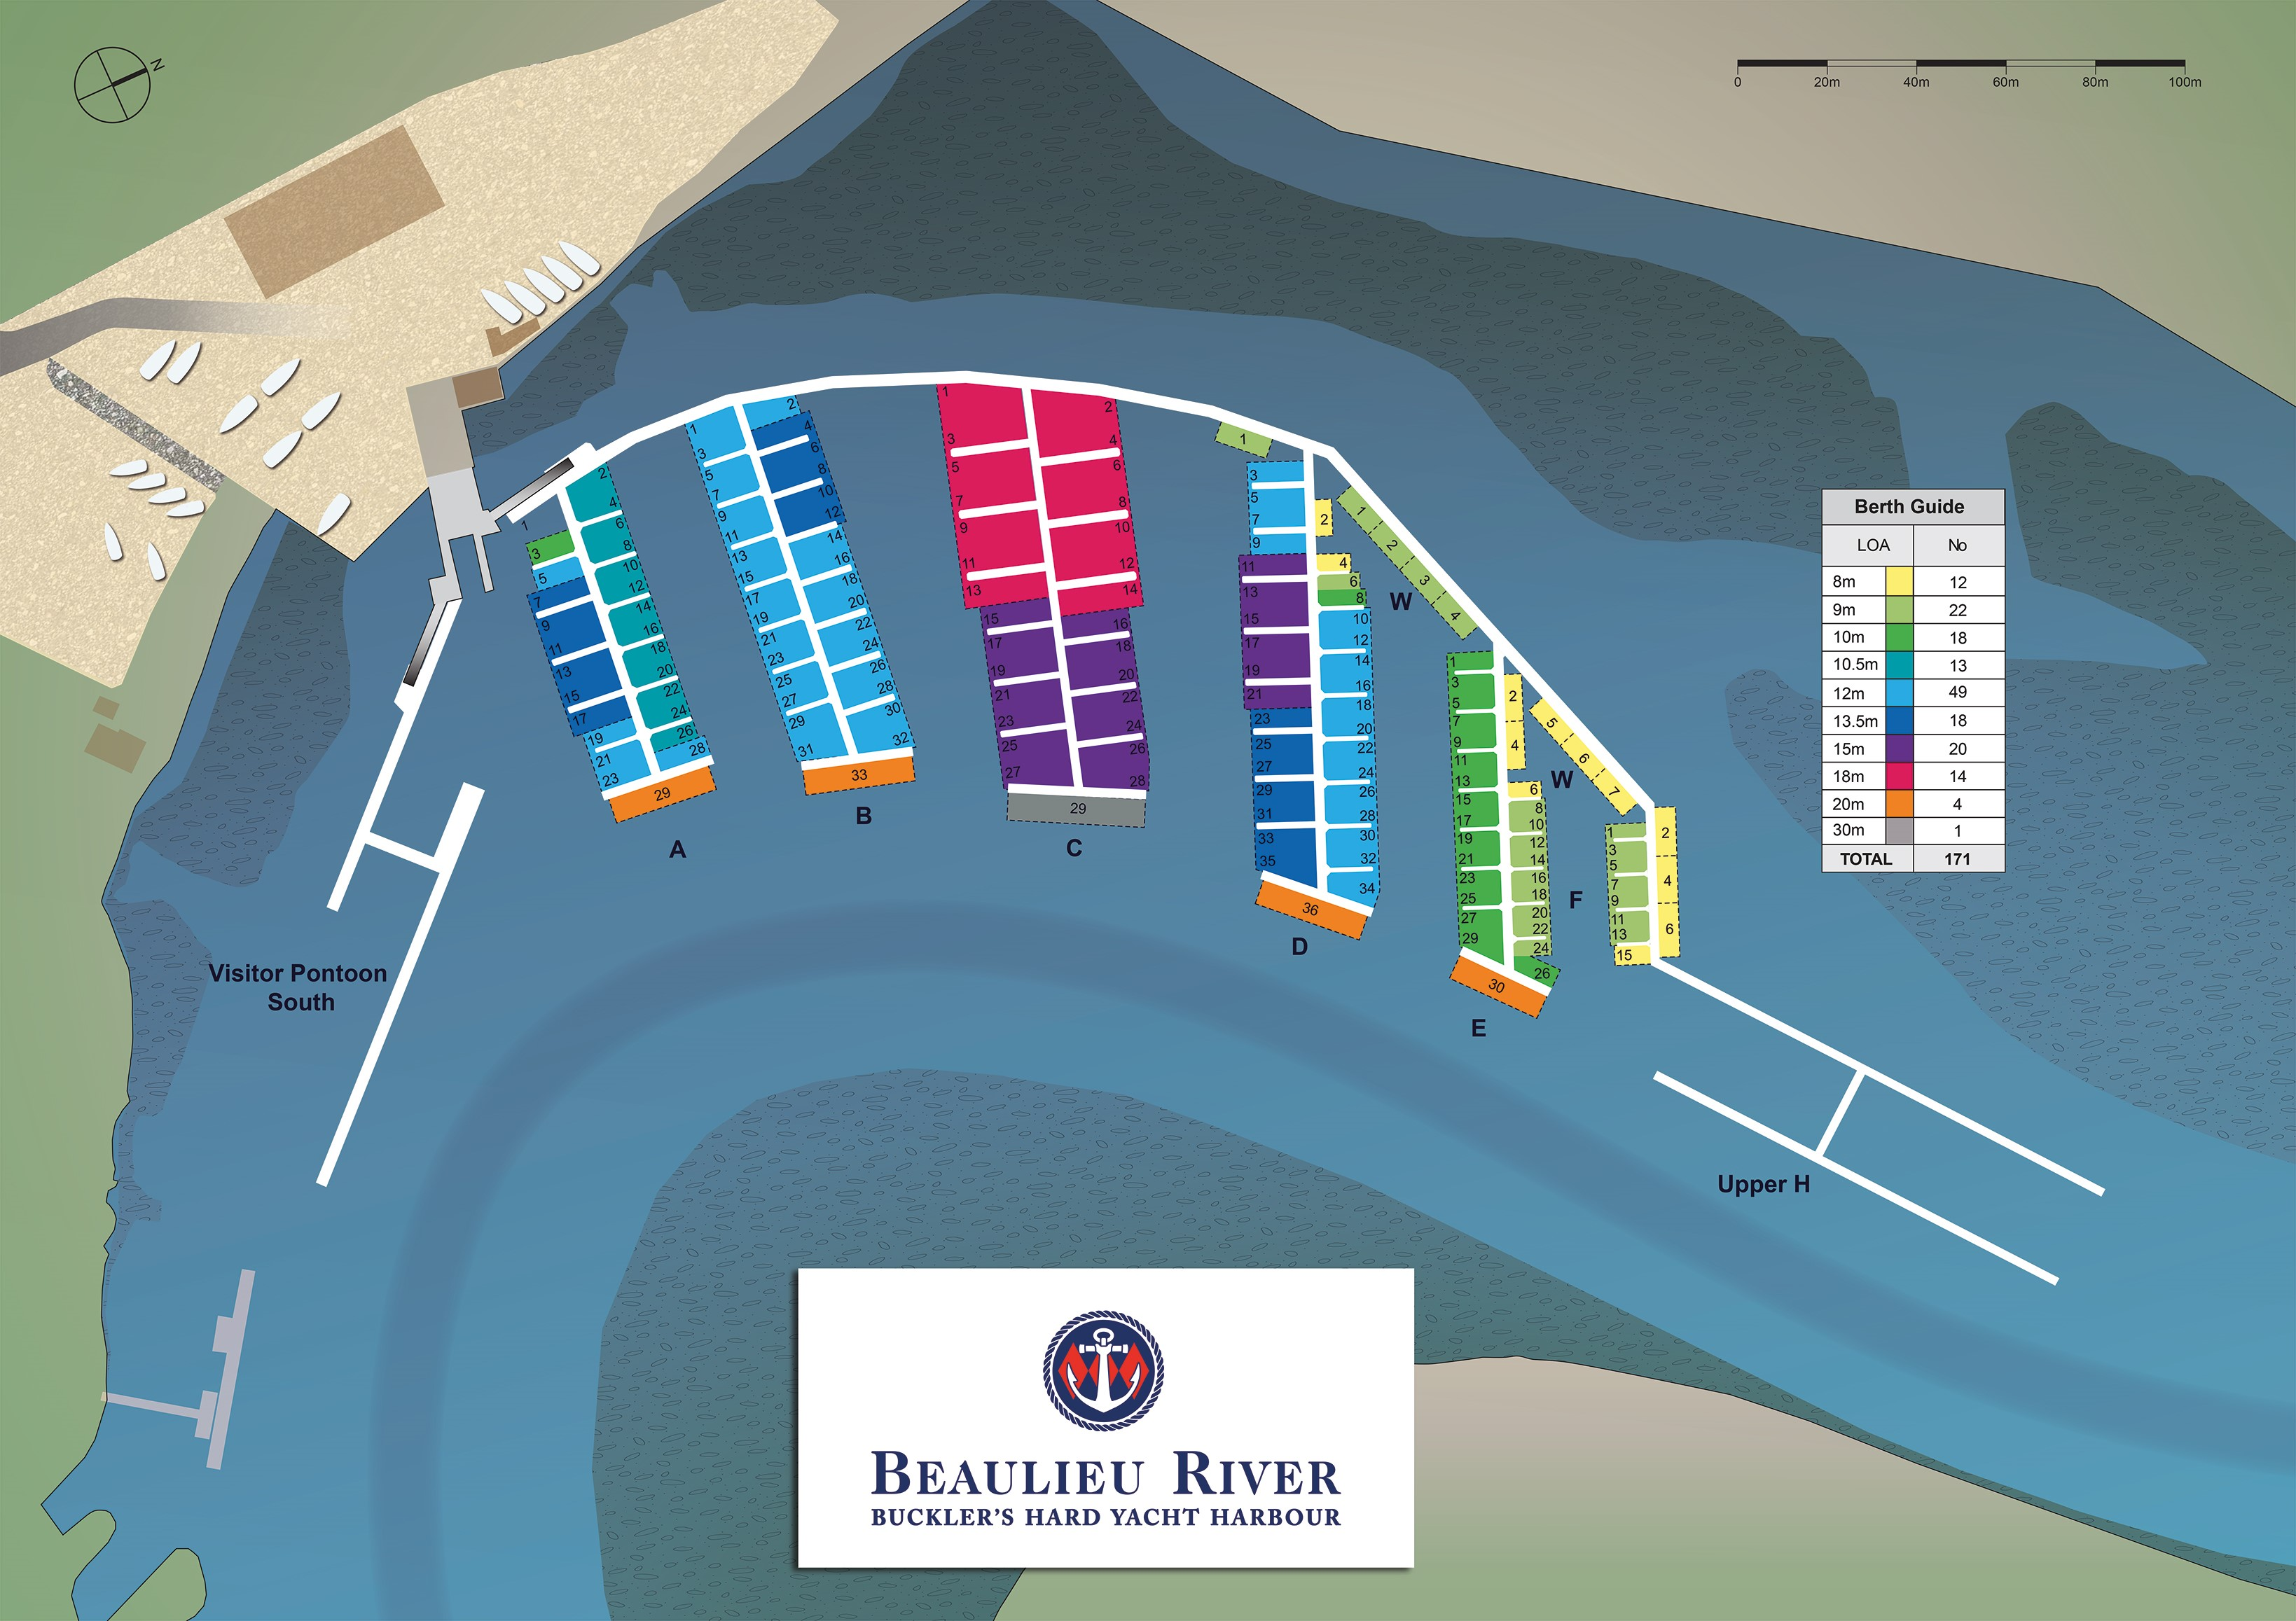 Map of Buckler's Hard Yacht Harbour berths